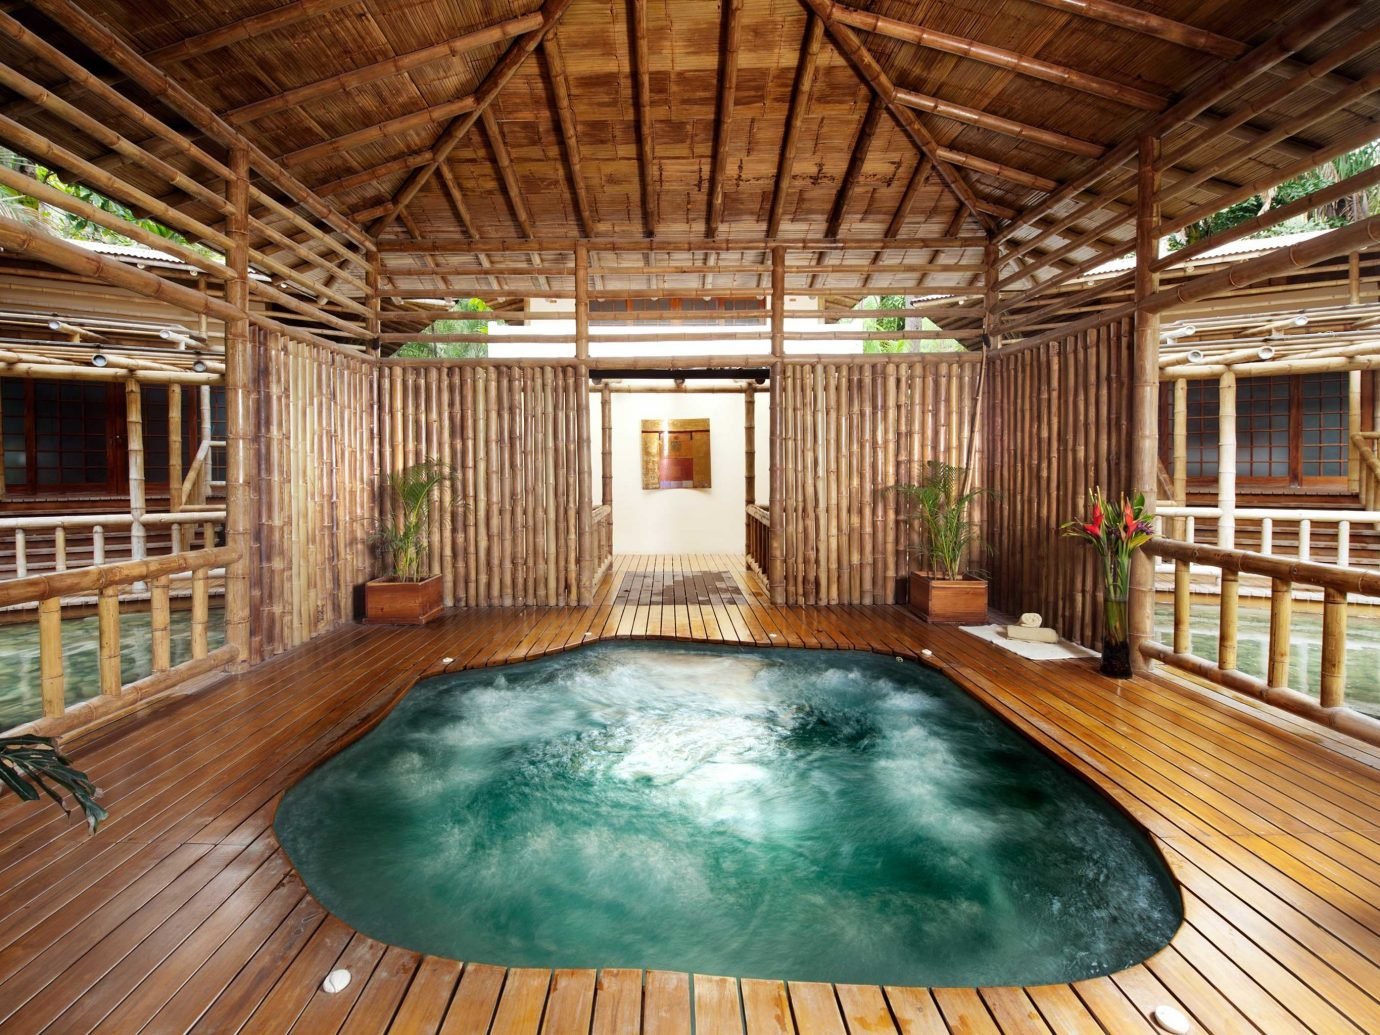 Indoor Jacuzzi At Florblanca In Costa Rica